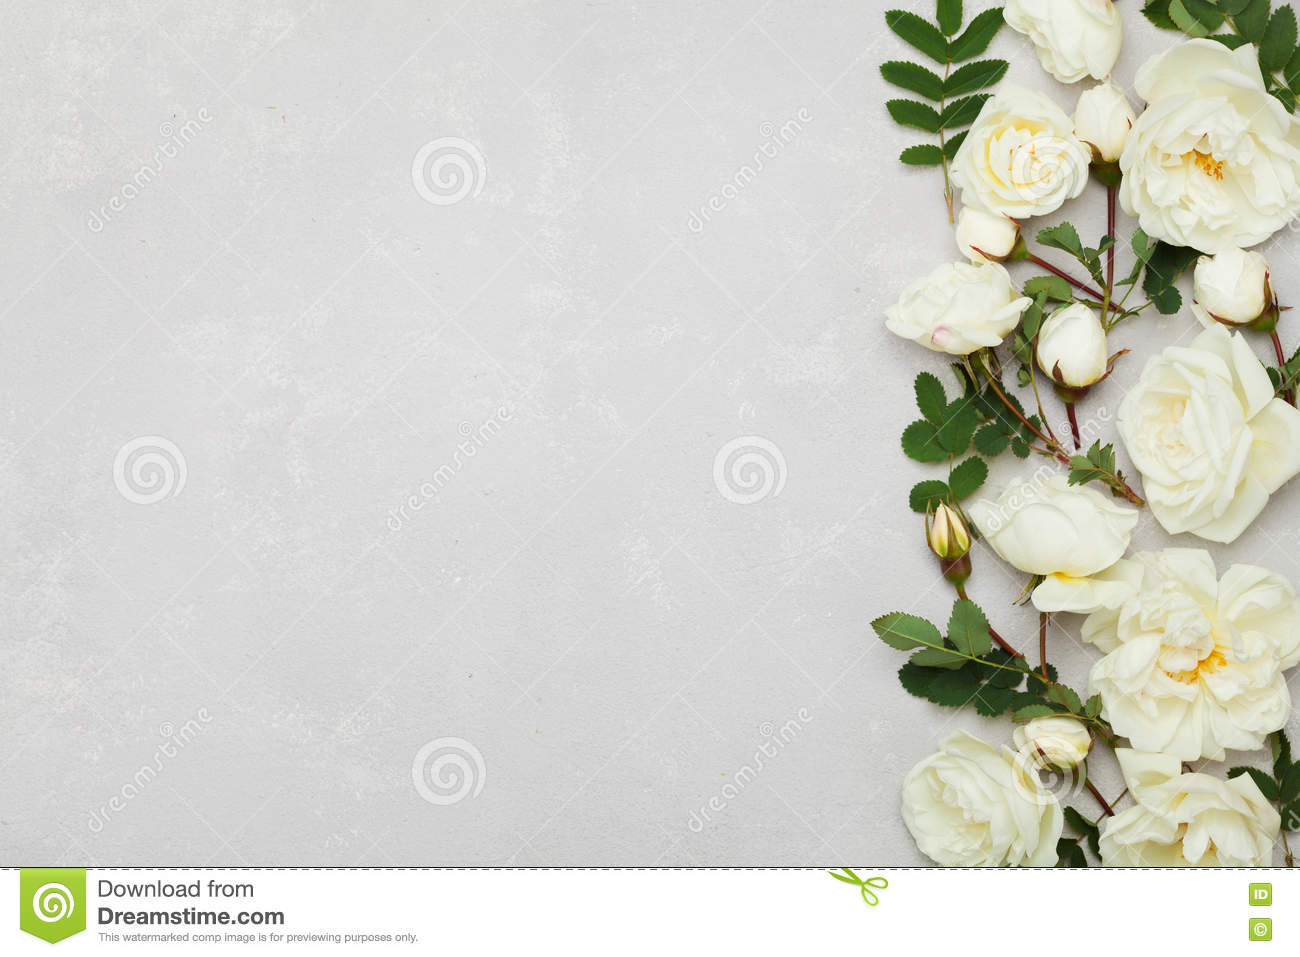 Green and white floral pattern - photo#35